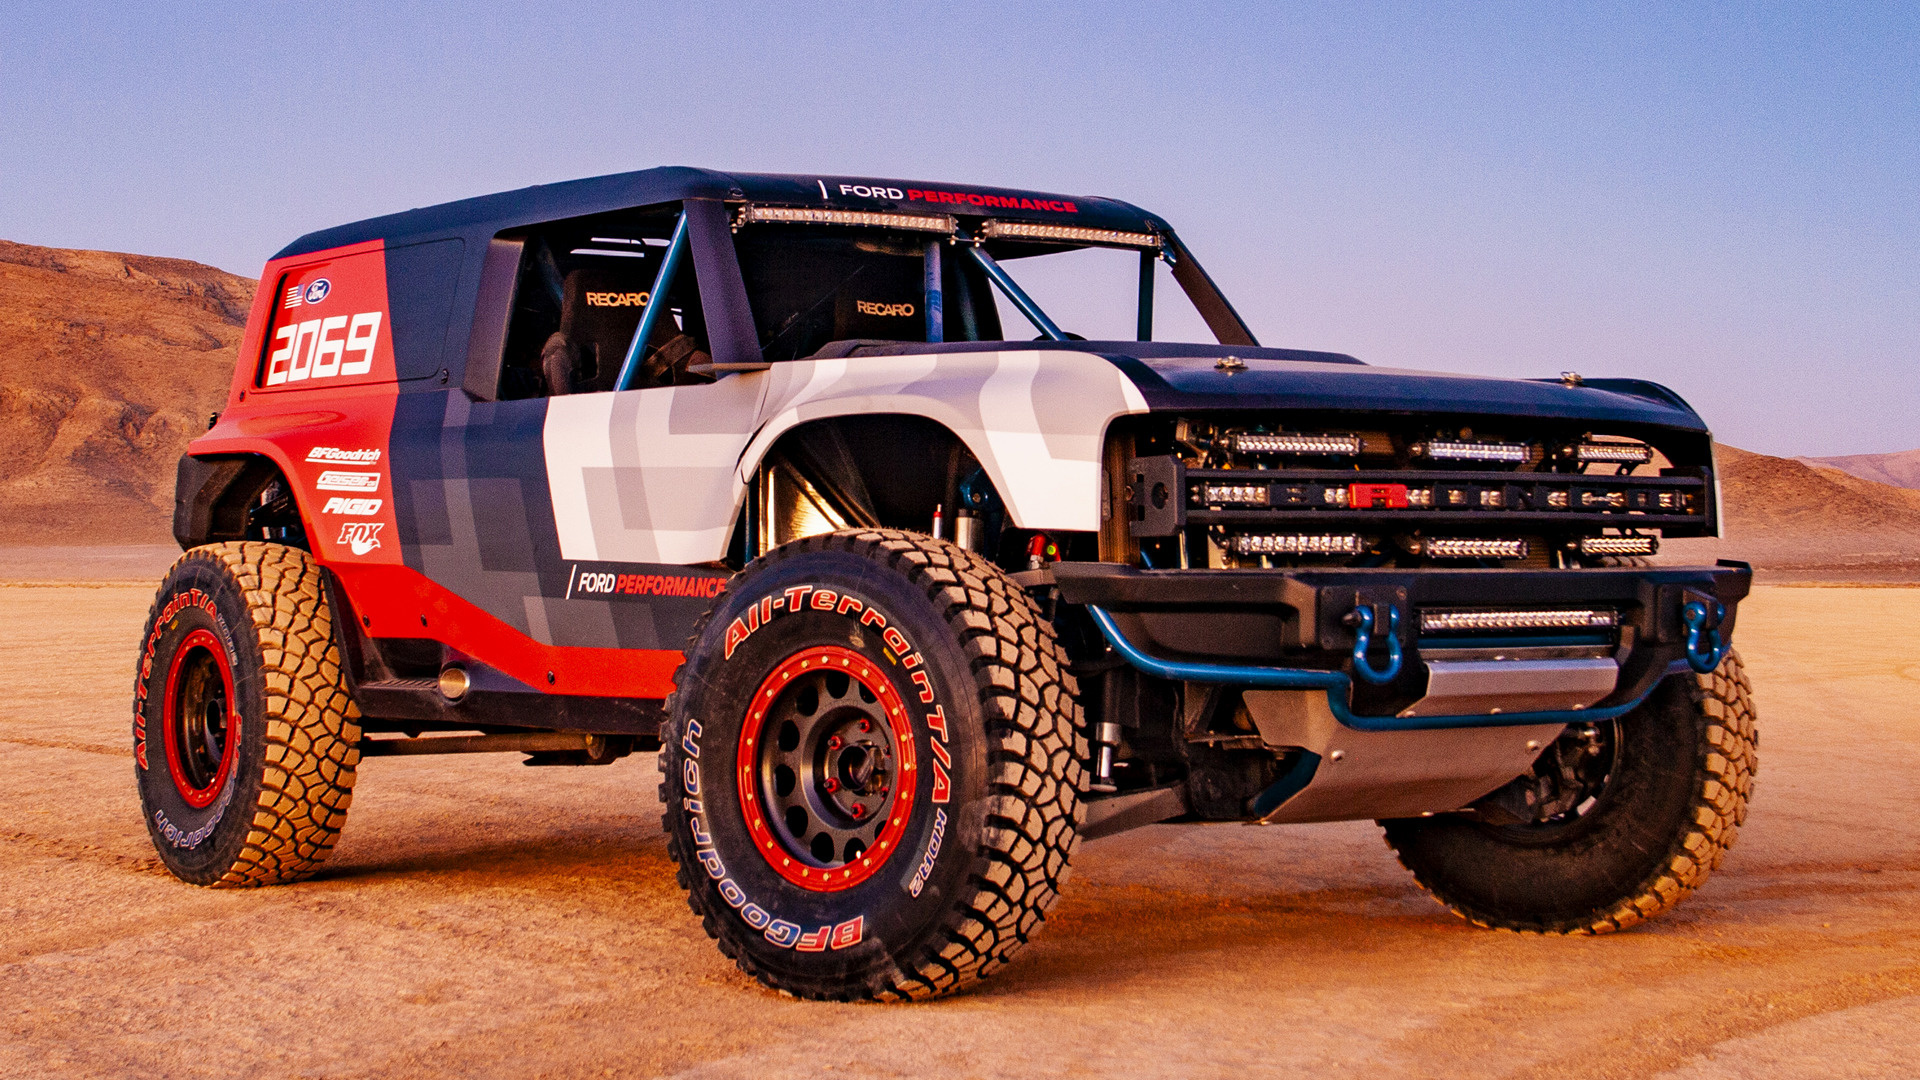 2019 Ford Bronco R Race Prototype - Wallpapers and HD ...